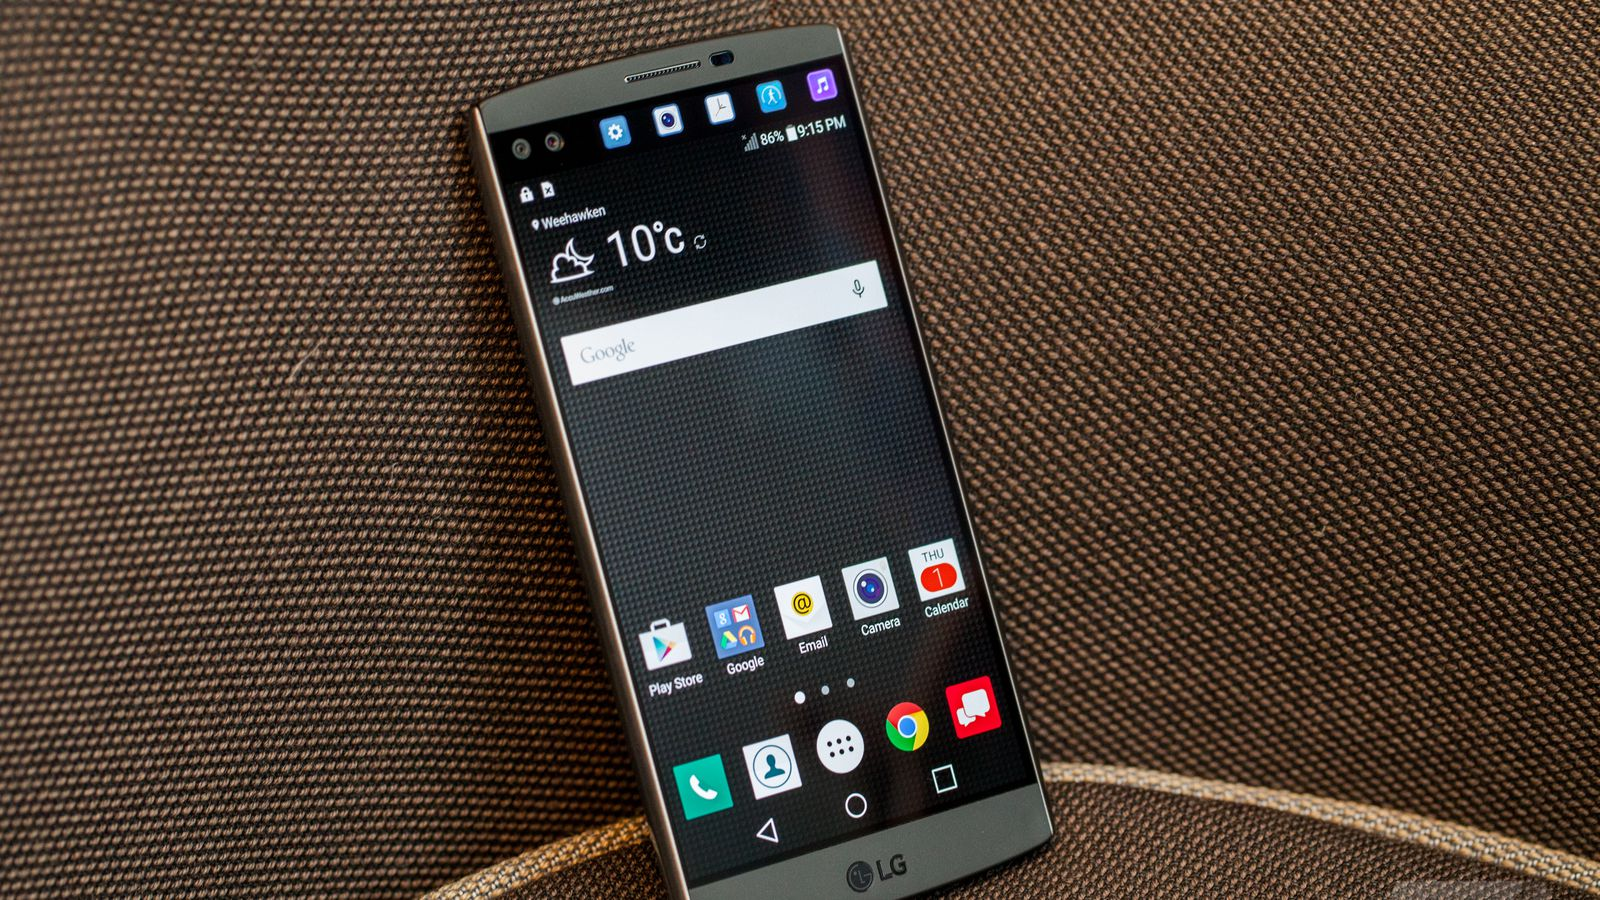 Up close with lgs dual screen dual selfie camera phone the verge buycottarizona